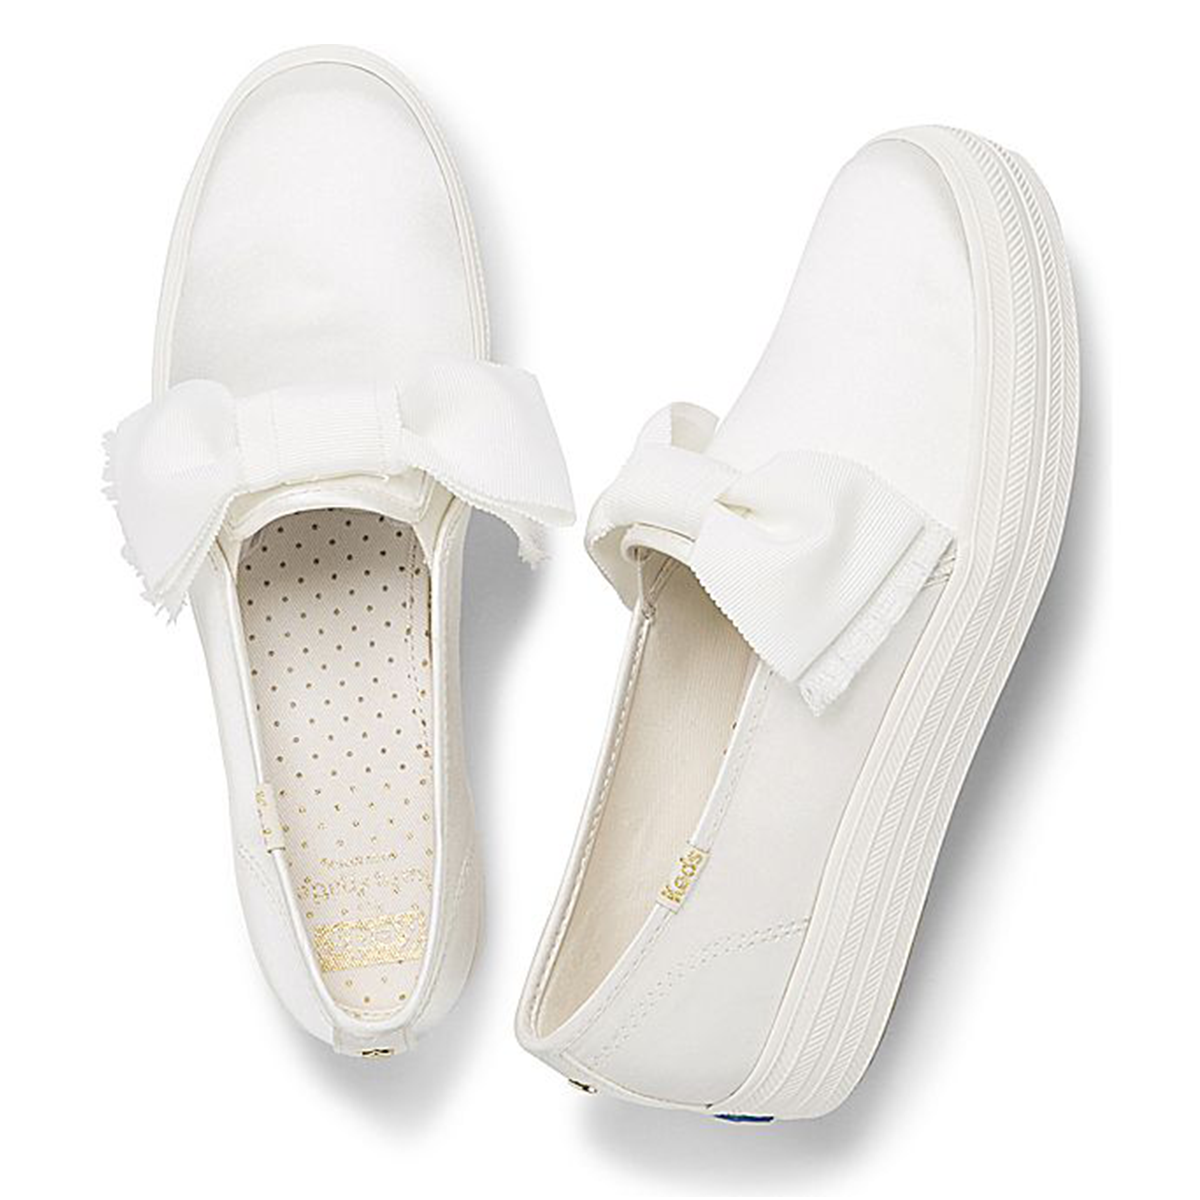 Keds Kate Spade New York Triple Decker Sneakers Bow White Shoes